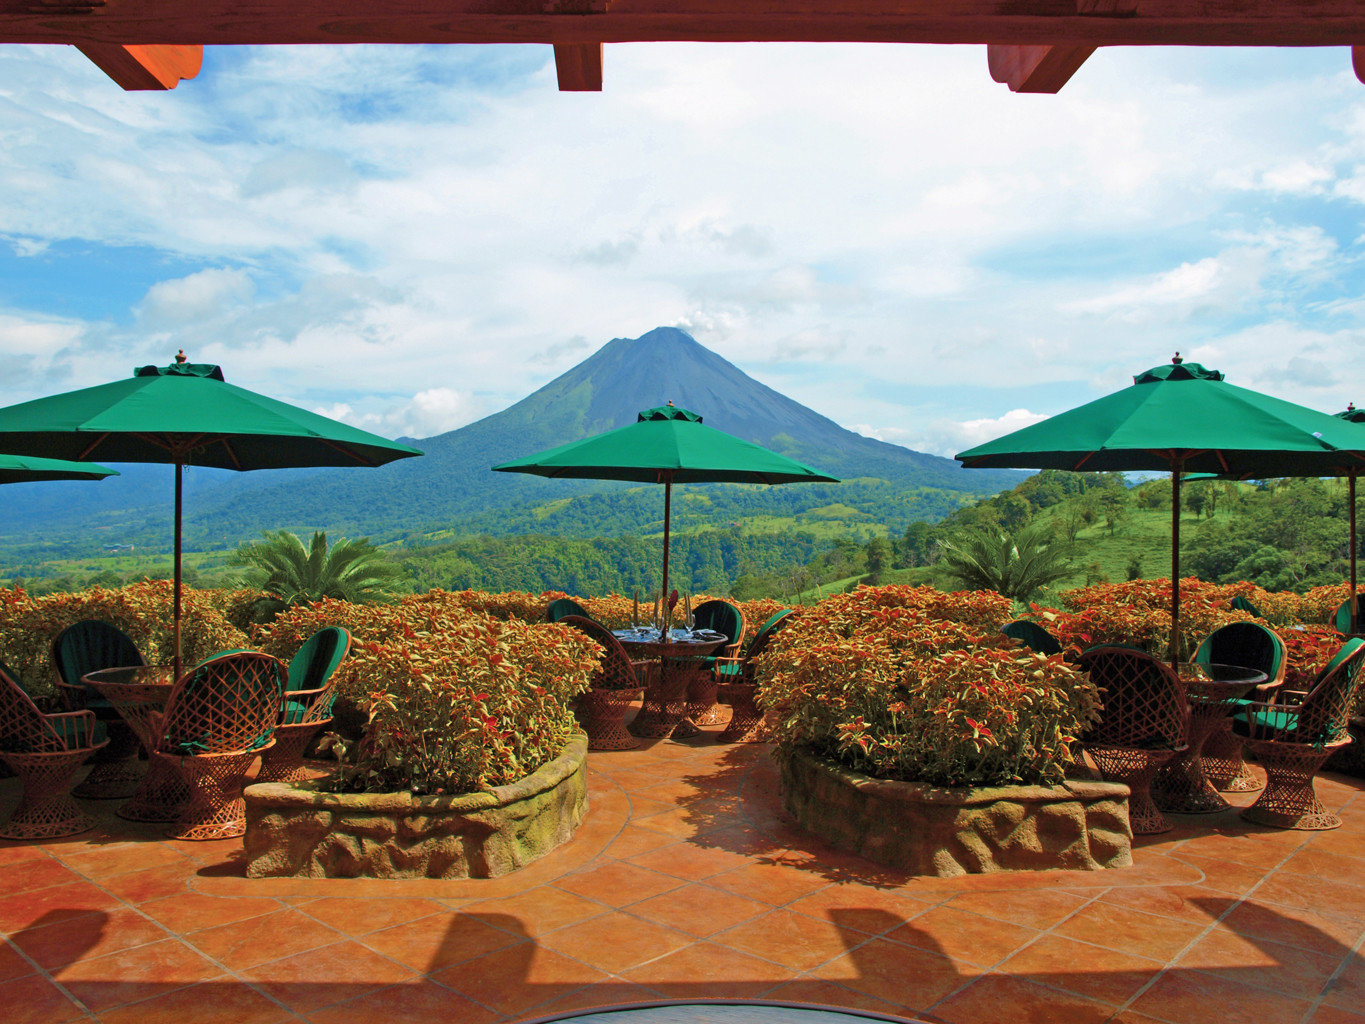 Country Dining Drink Eat Grounds Outdoors Patio Resort Rustic Spa Wellness sky umbrella leisure